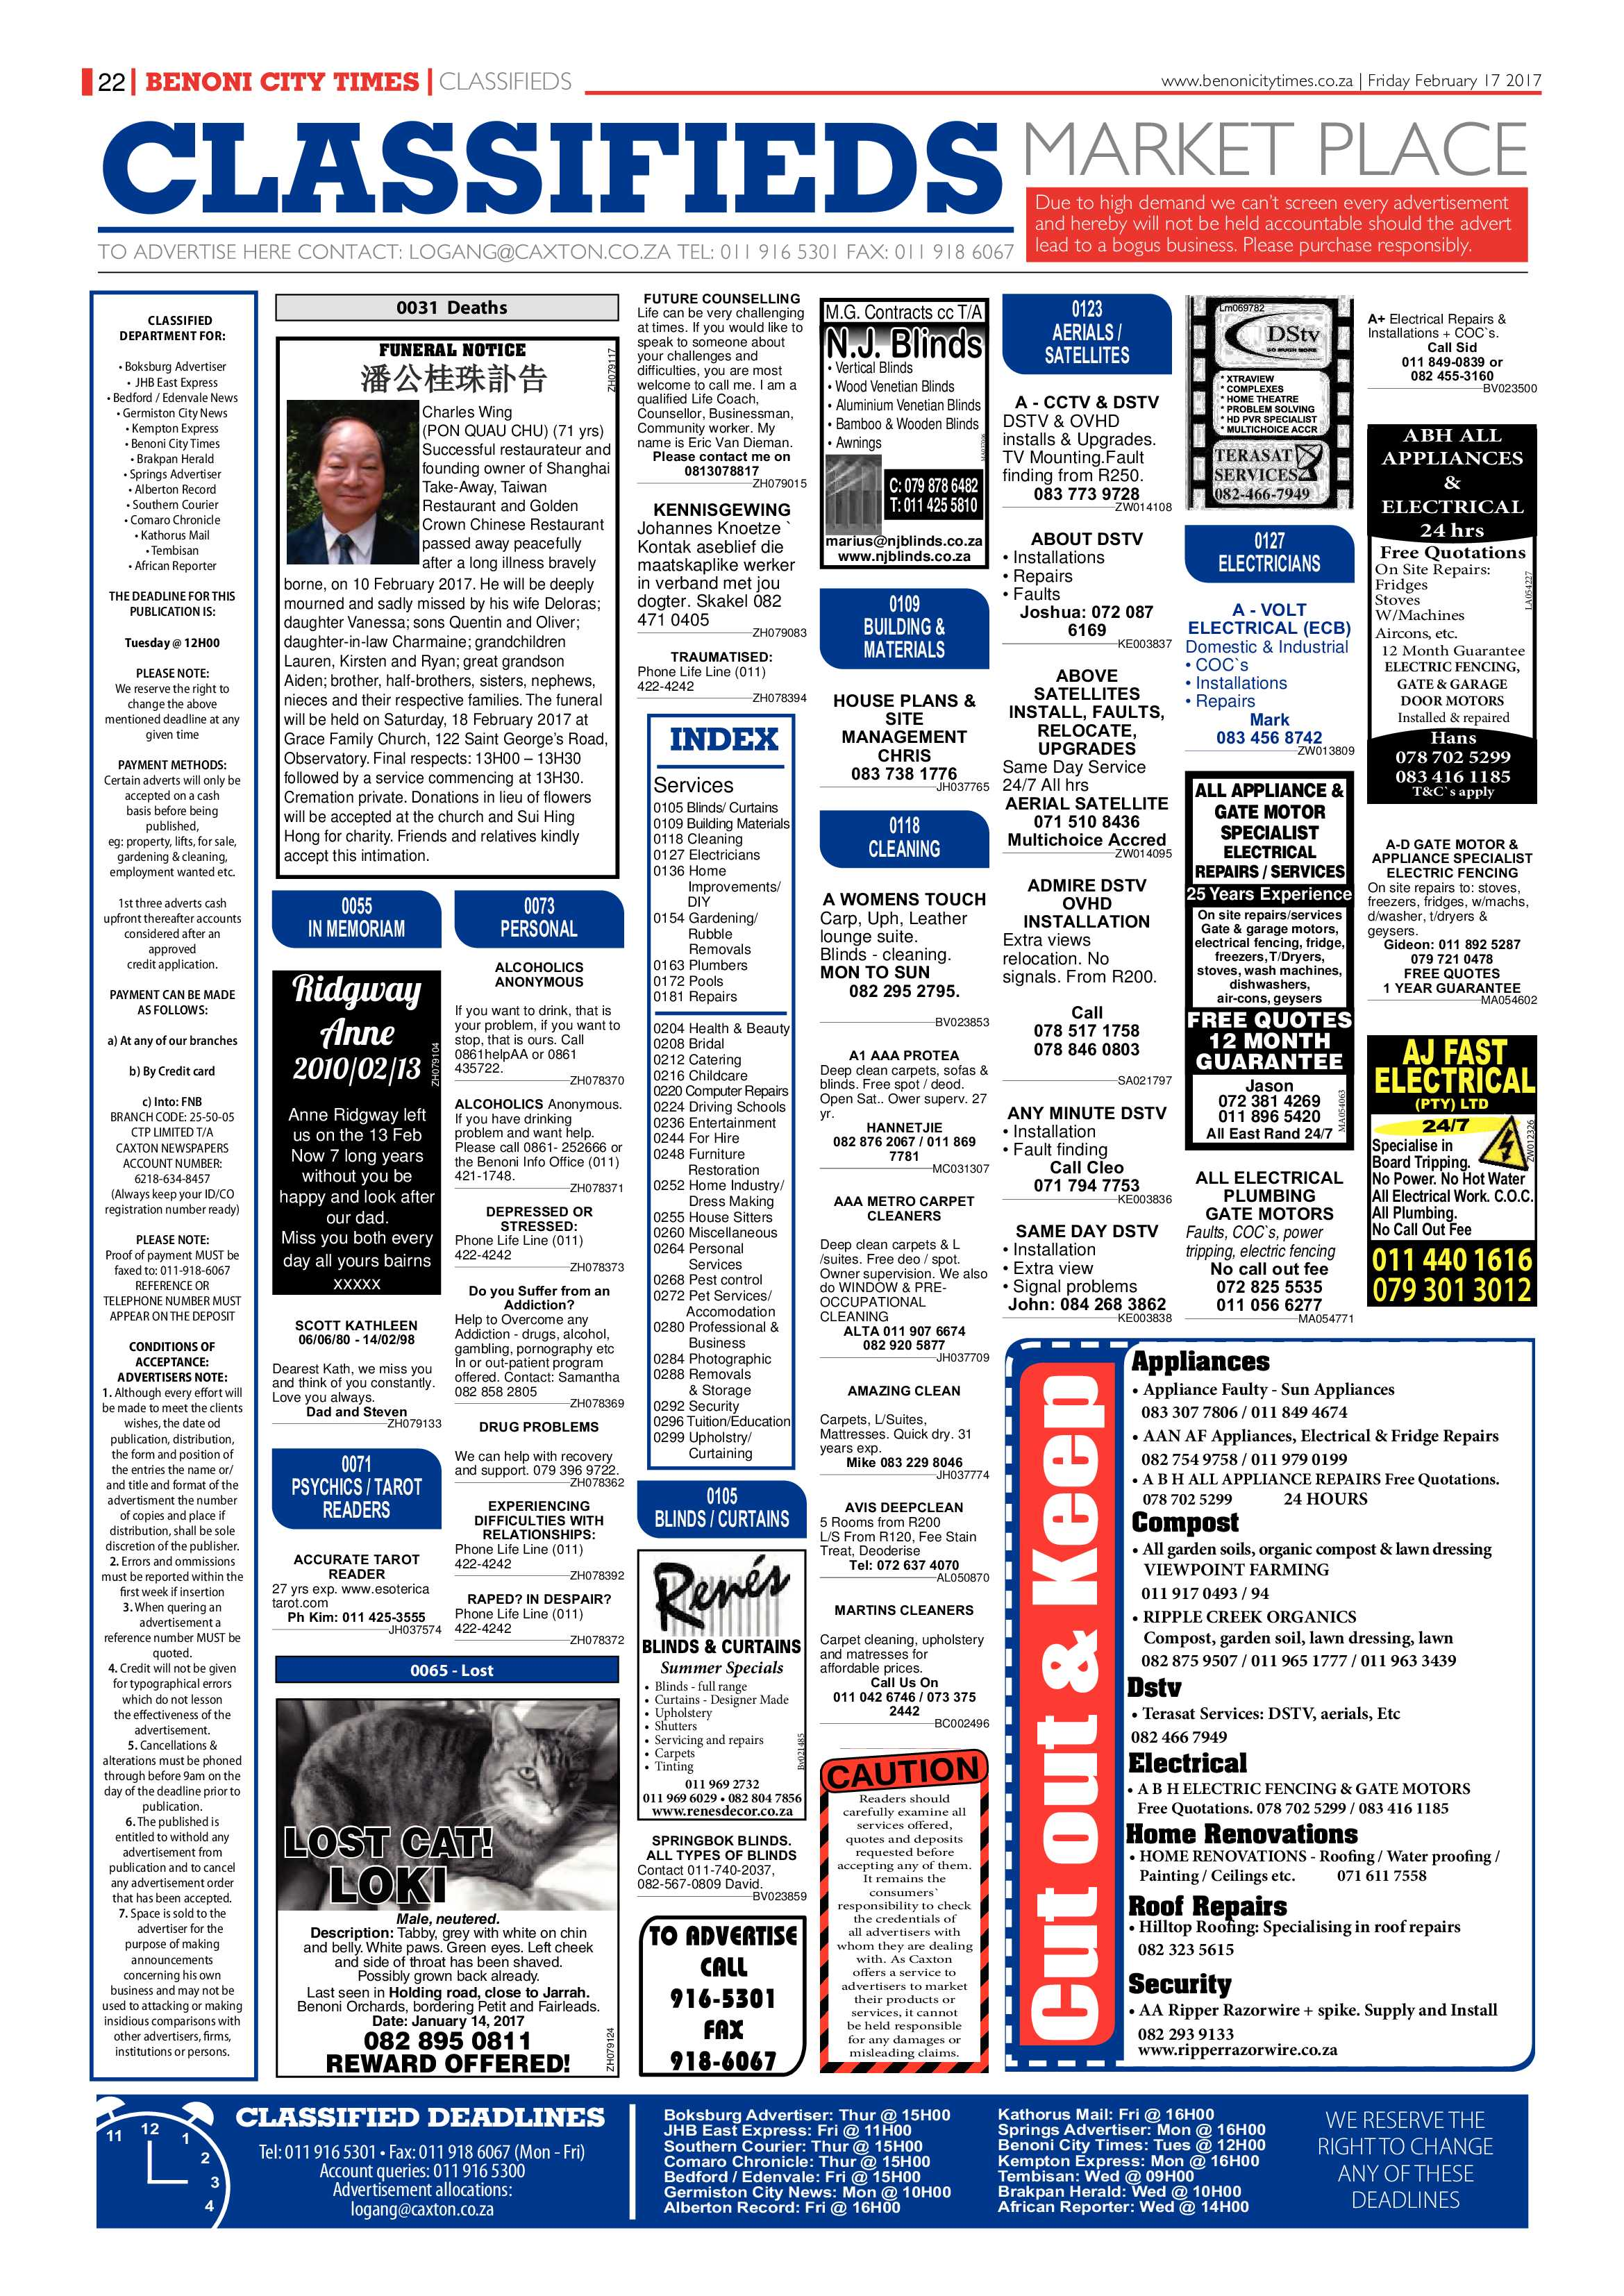 benoni-city-times-16-february-2017-epapers-page-22